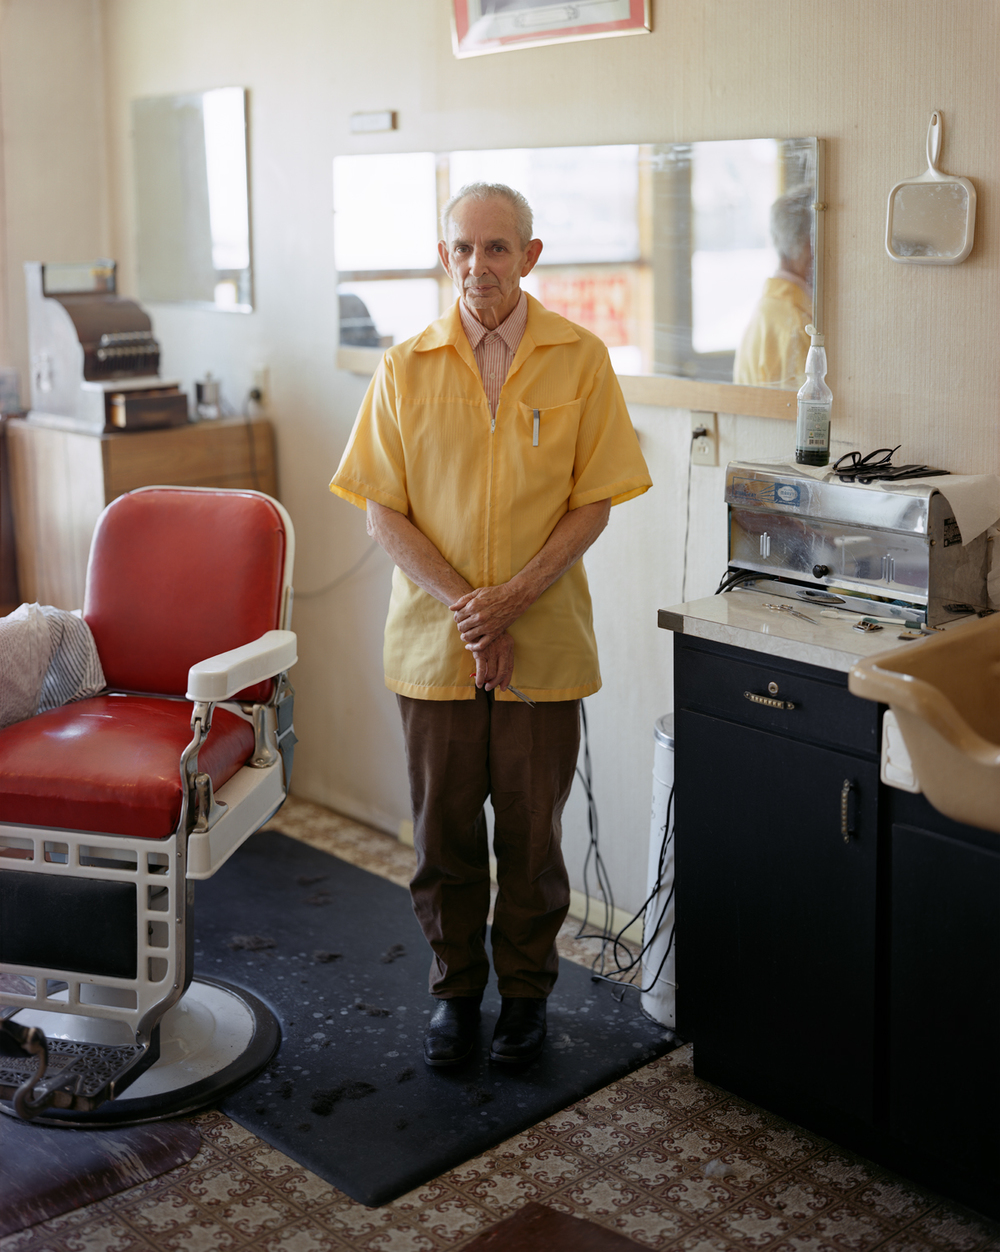 A Barber About to Give a Haircut, Arco, Idaho, 2004, Joshua Dudley Greer